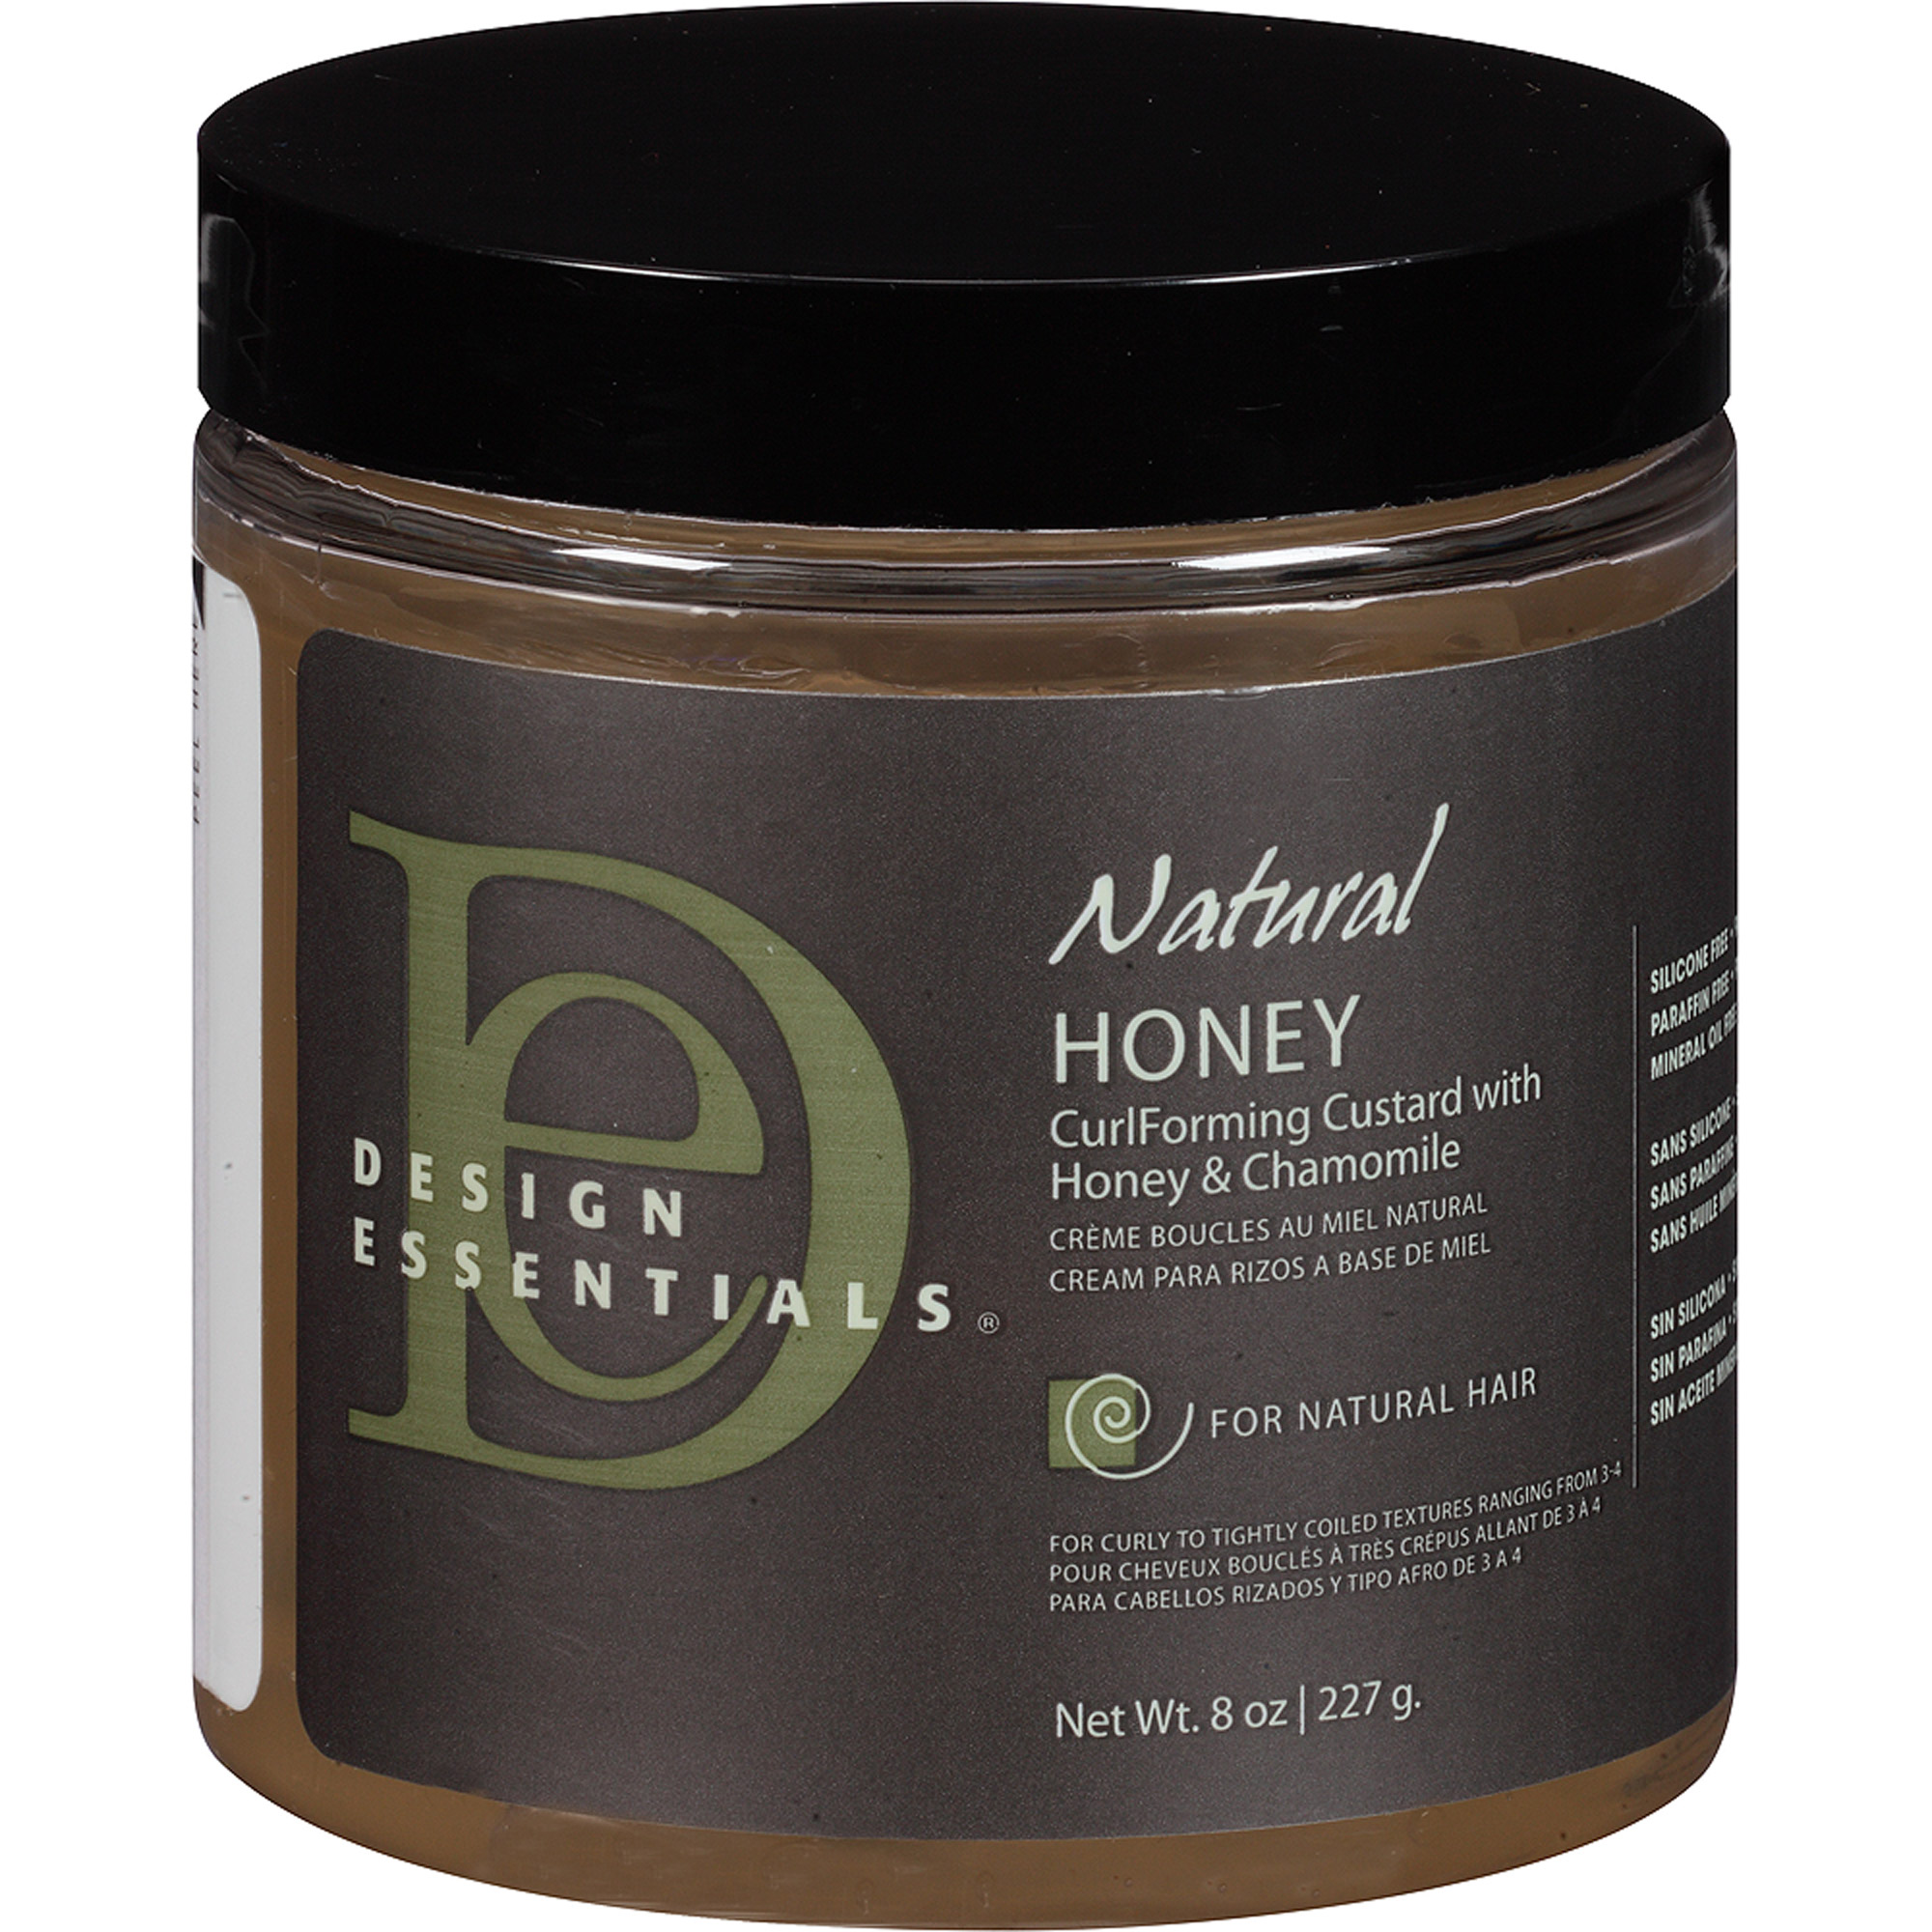 Design Essentials Natural Honey CurlForming Custard with Honey & Chamomile, 8 oz